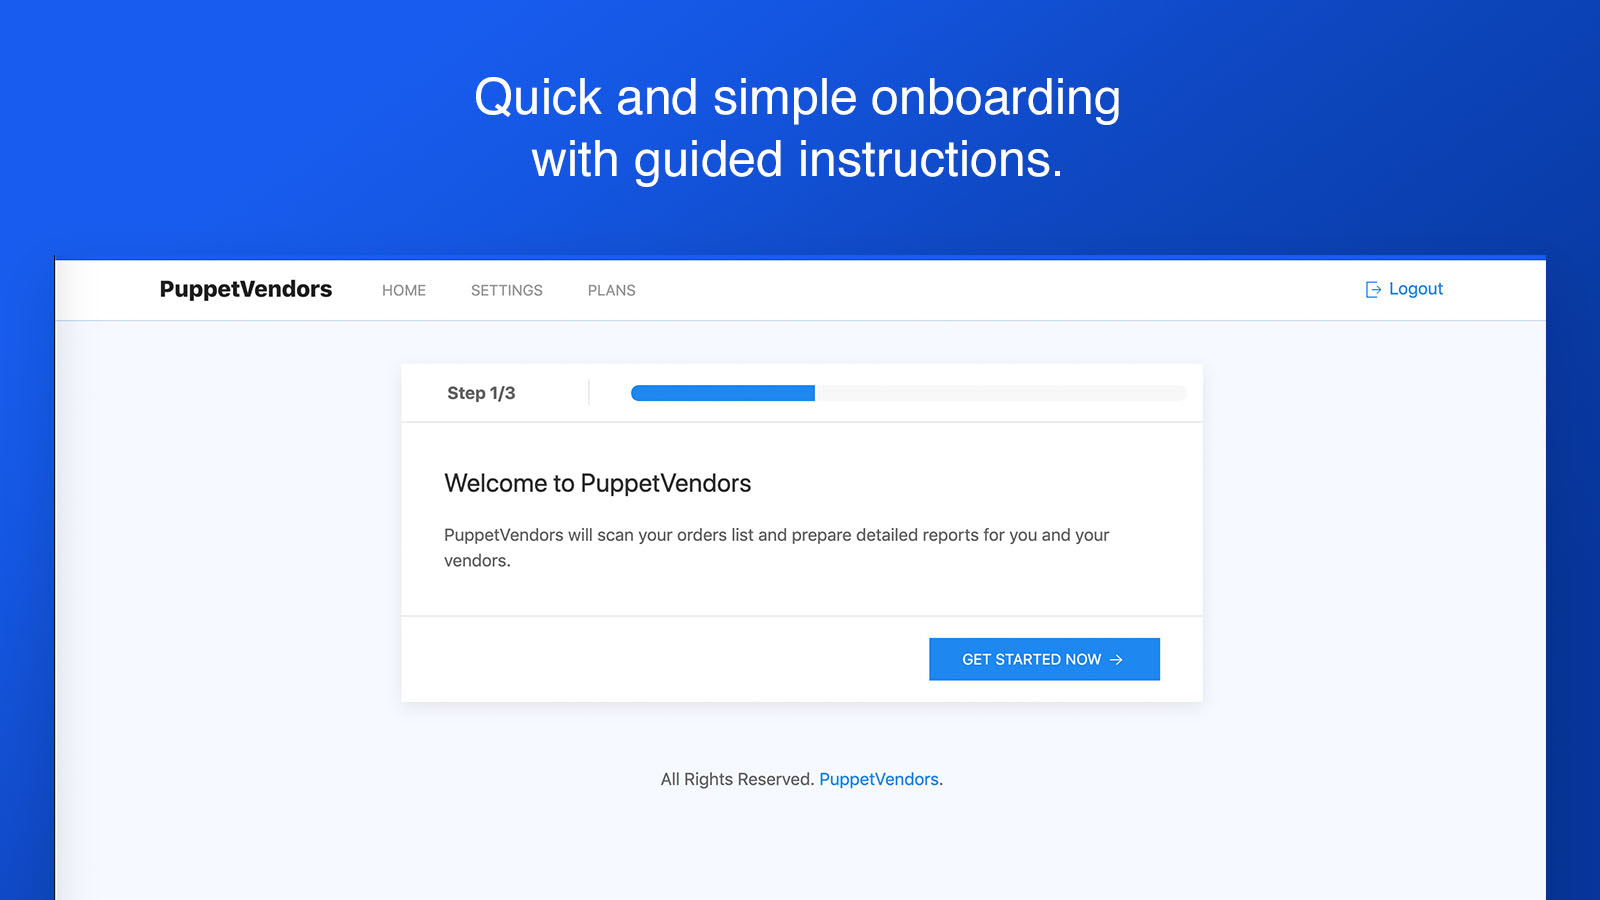 Quick and simple onboarding with guided instructions